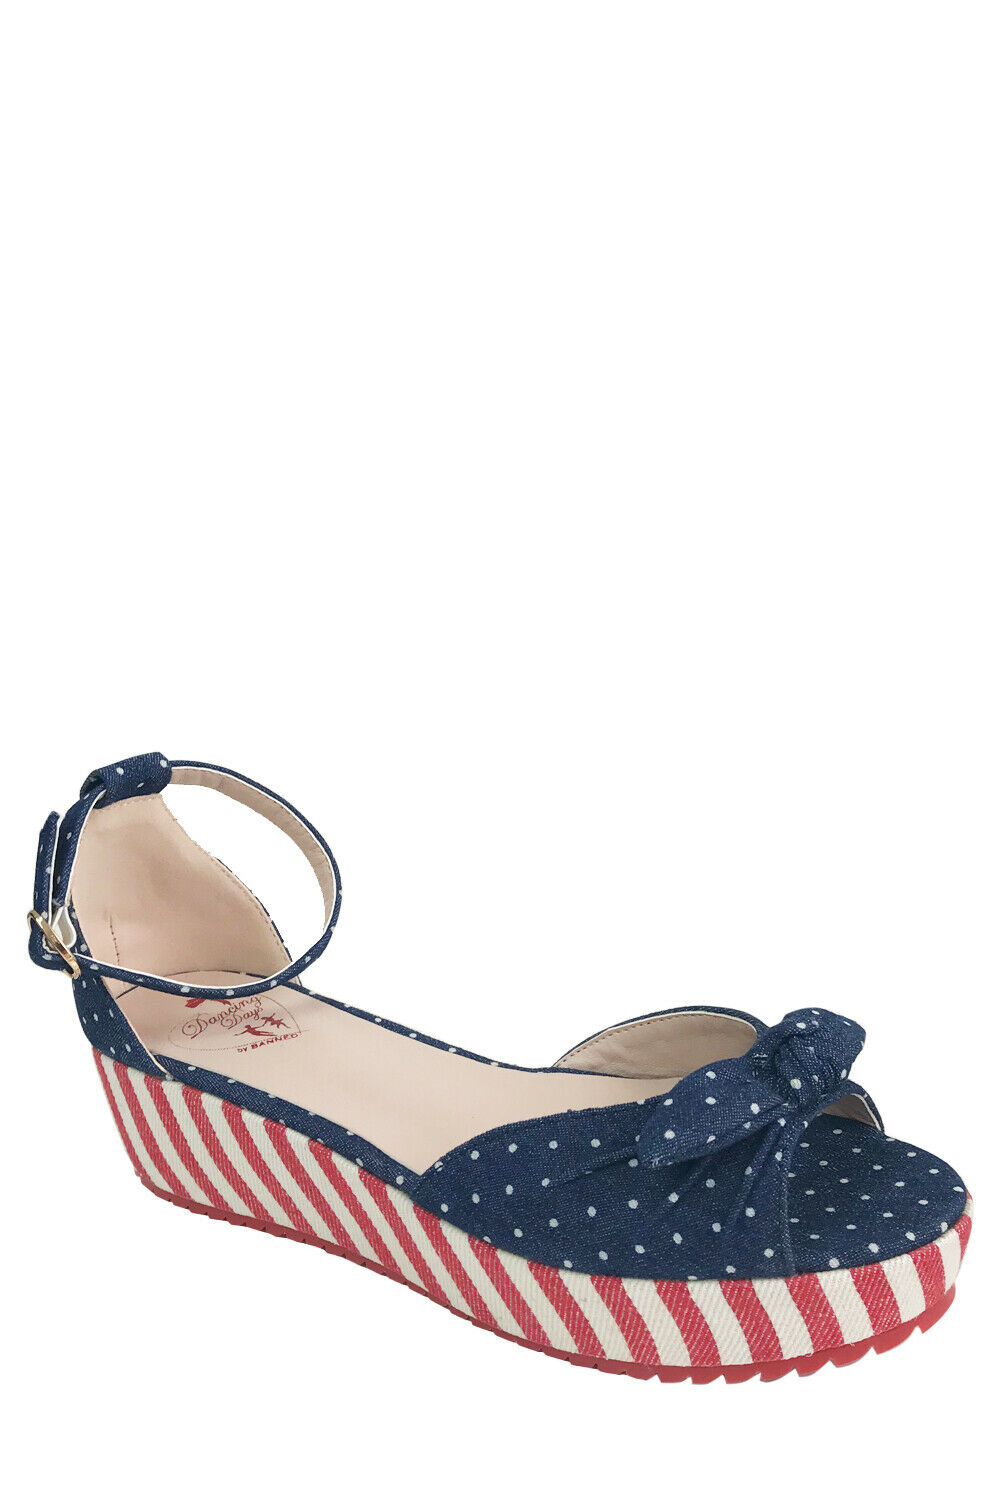 Banned RiRi West 50s Rockabilly Vegan Polka Dot Sandals In Navy